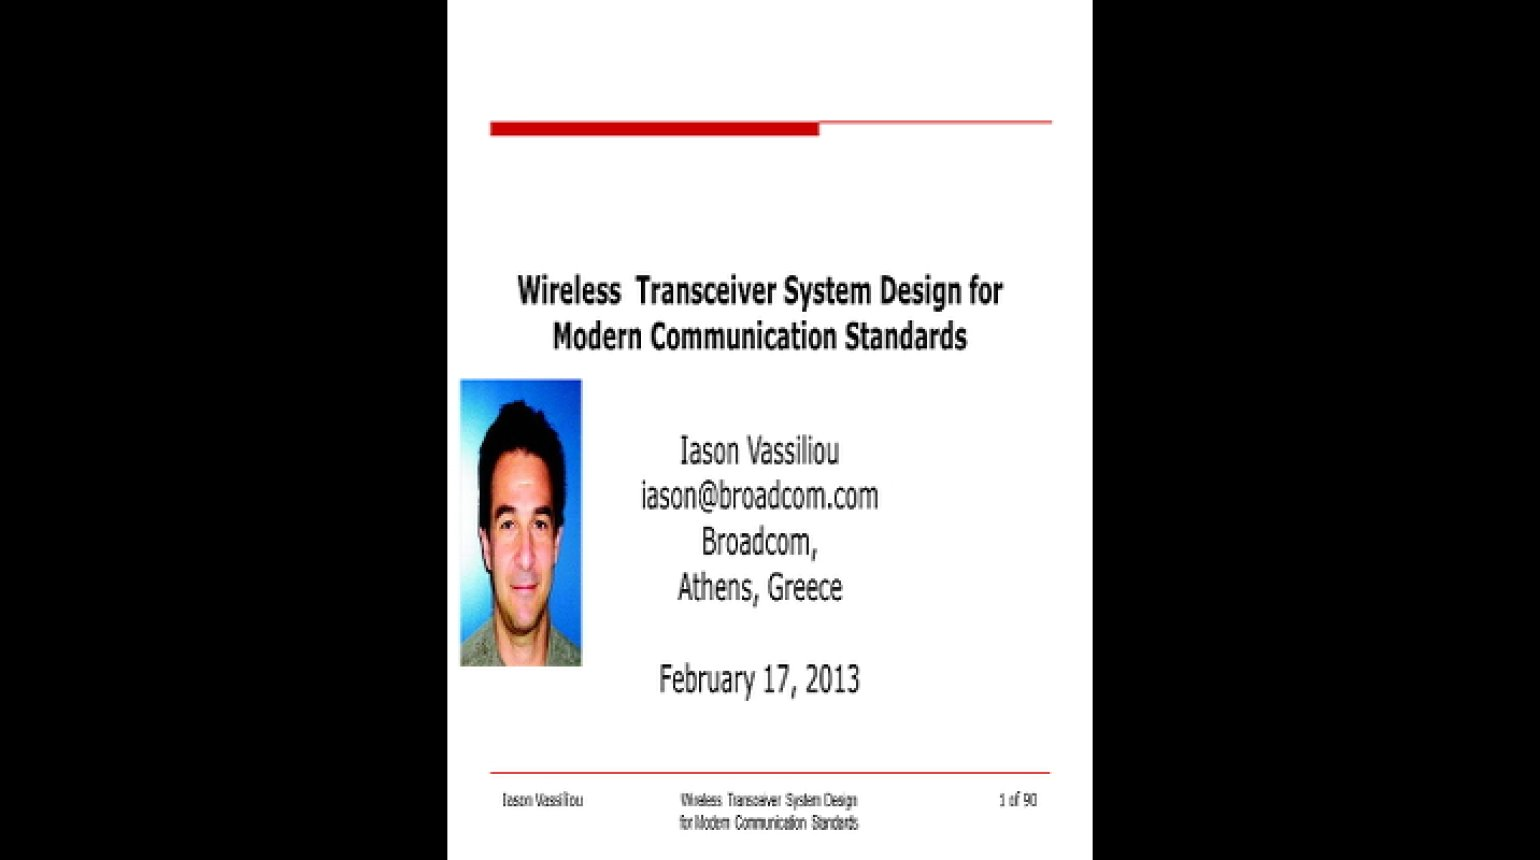 Wireless Transceiver System Design for Modern Communication Standards Video